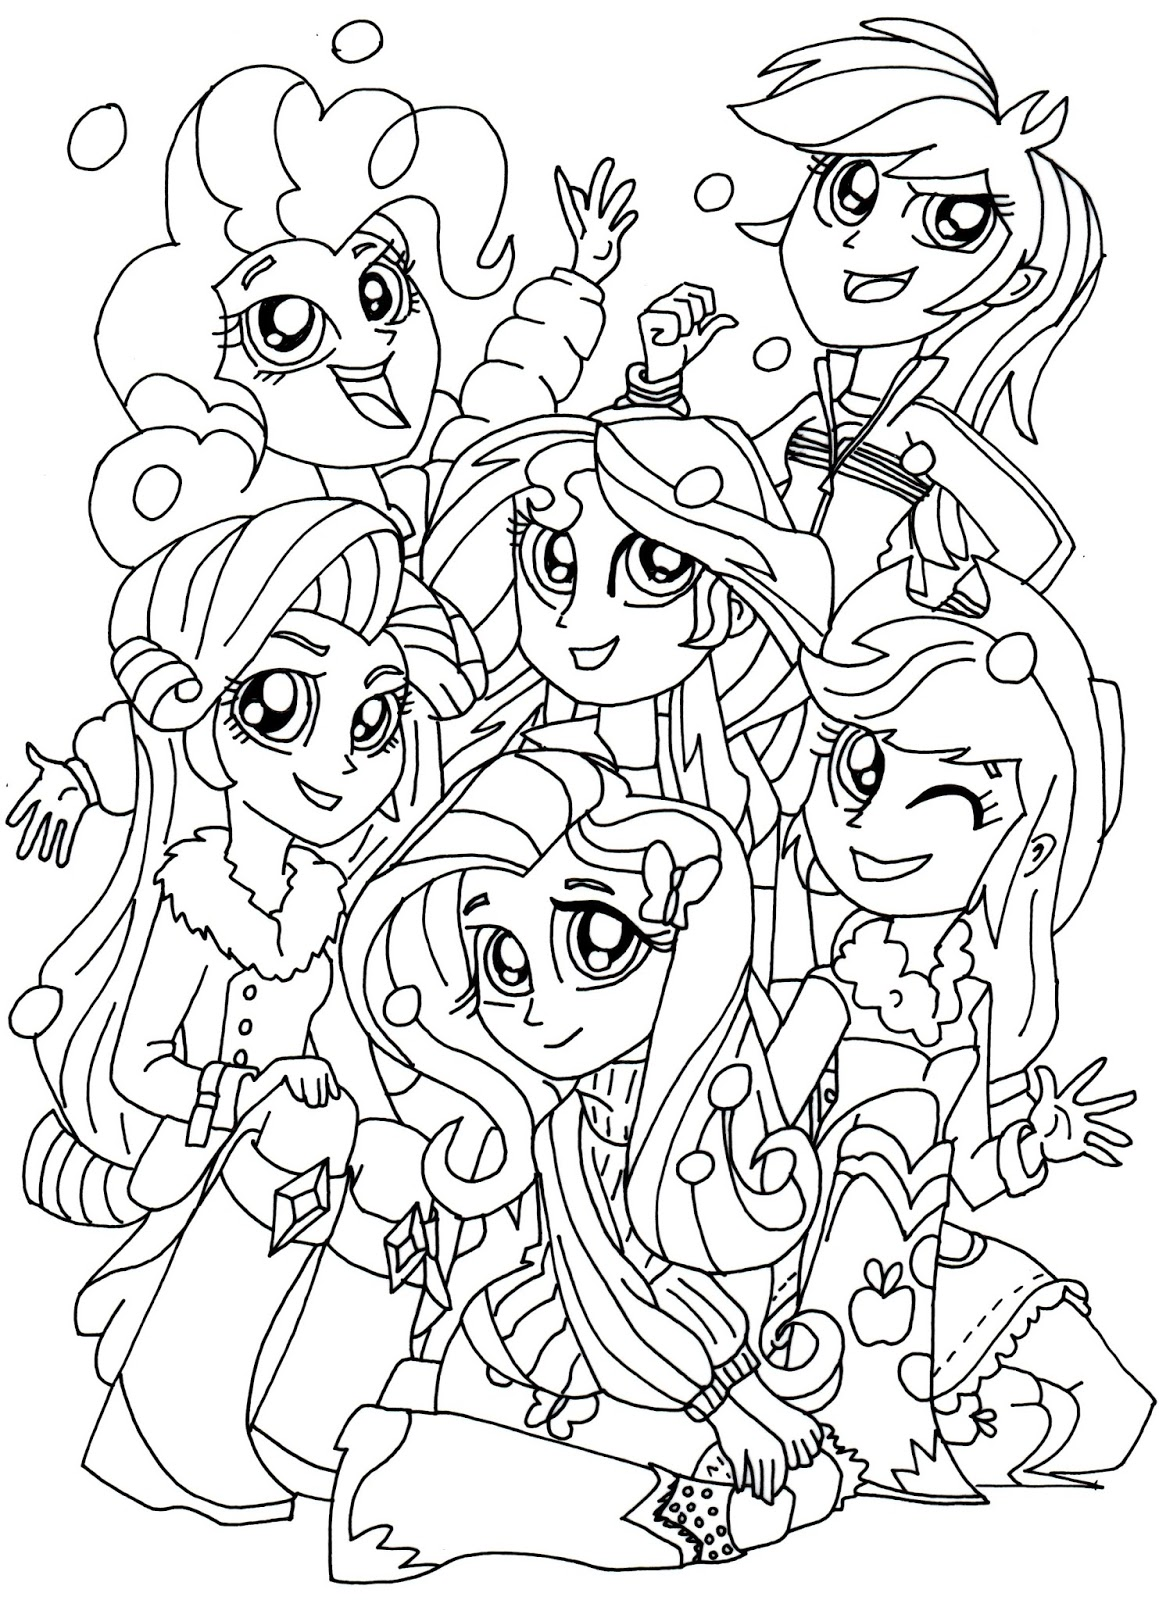 Free Printable My Little Pony Coloring Pages January 2016 My Pony Equestria Coloring Pages To Print Free